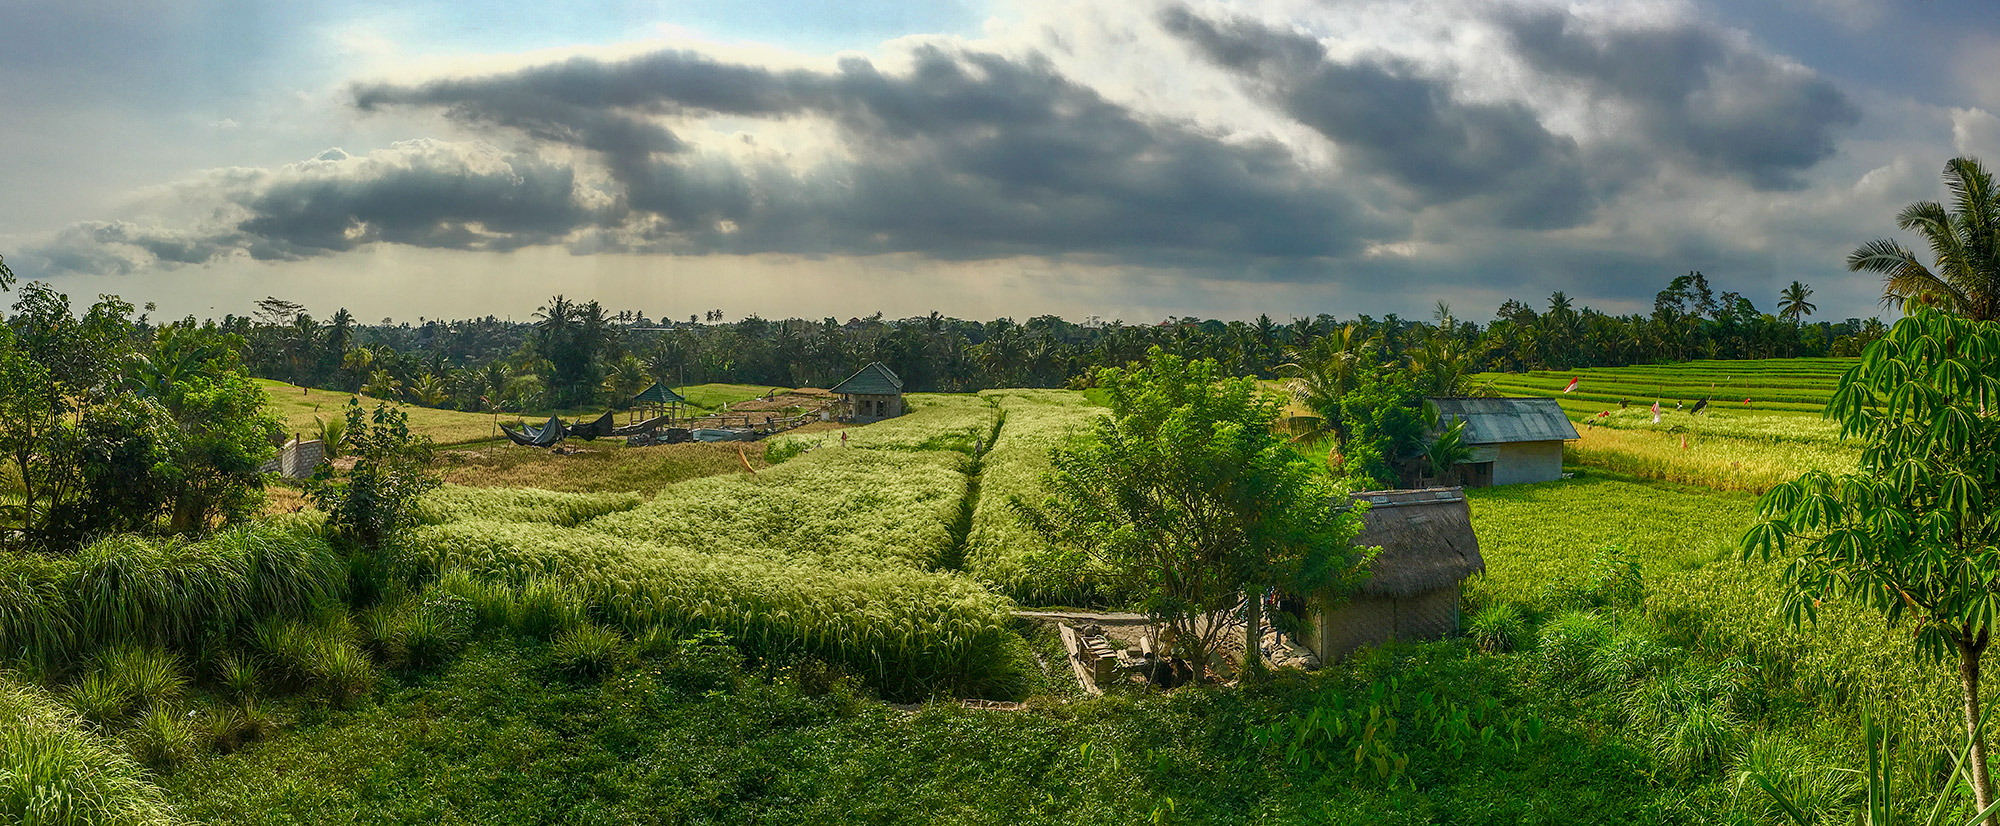 Rice fields just outside of Ubud, taken with the iPhone6s